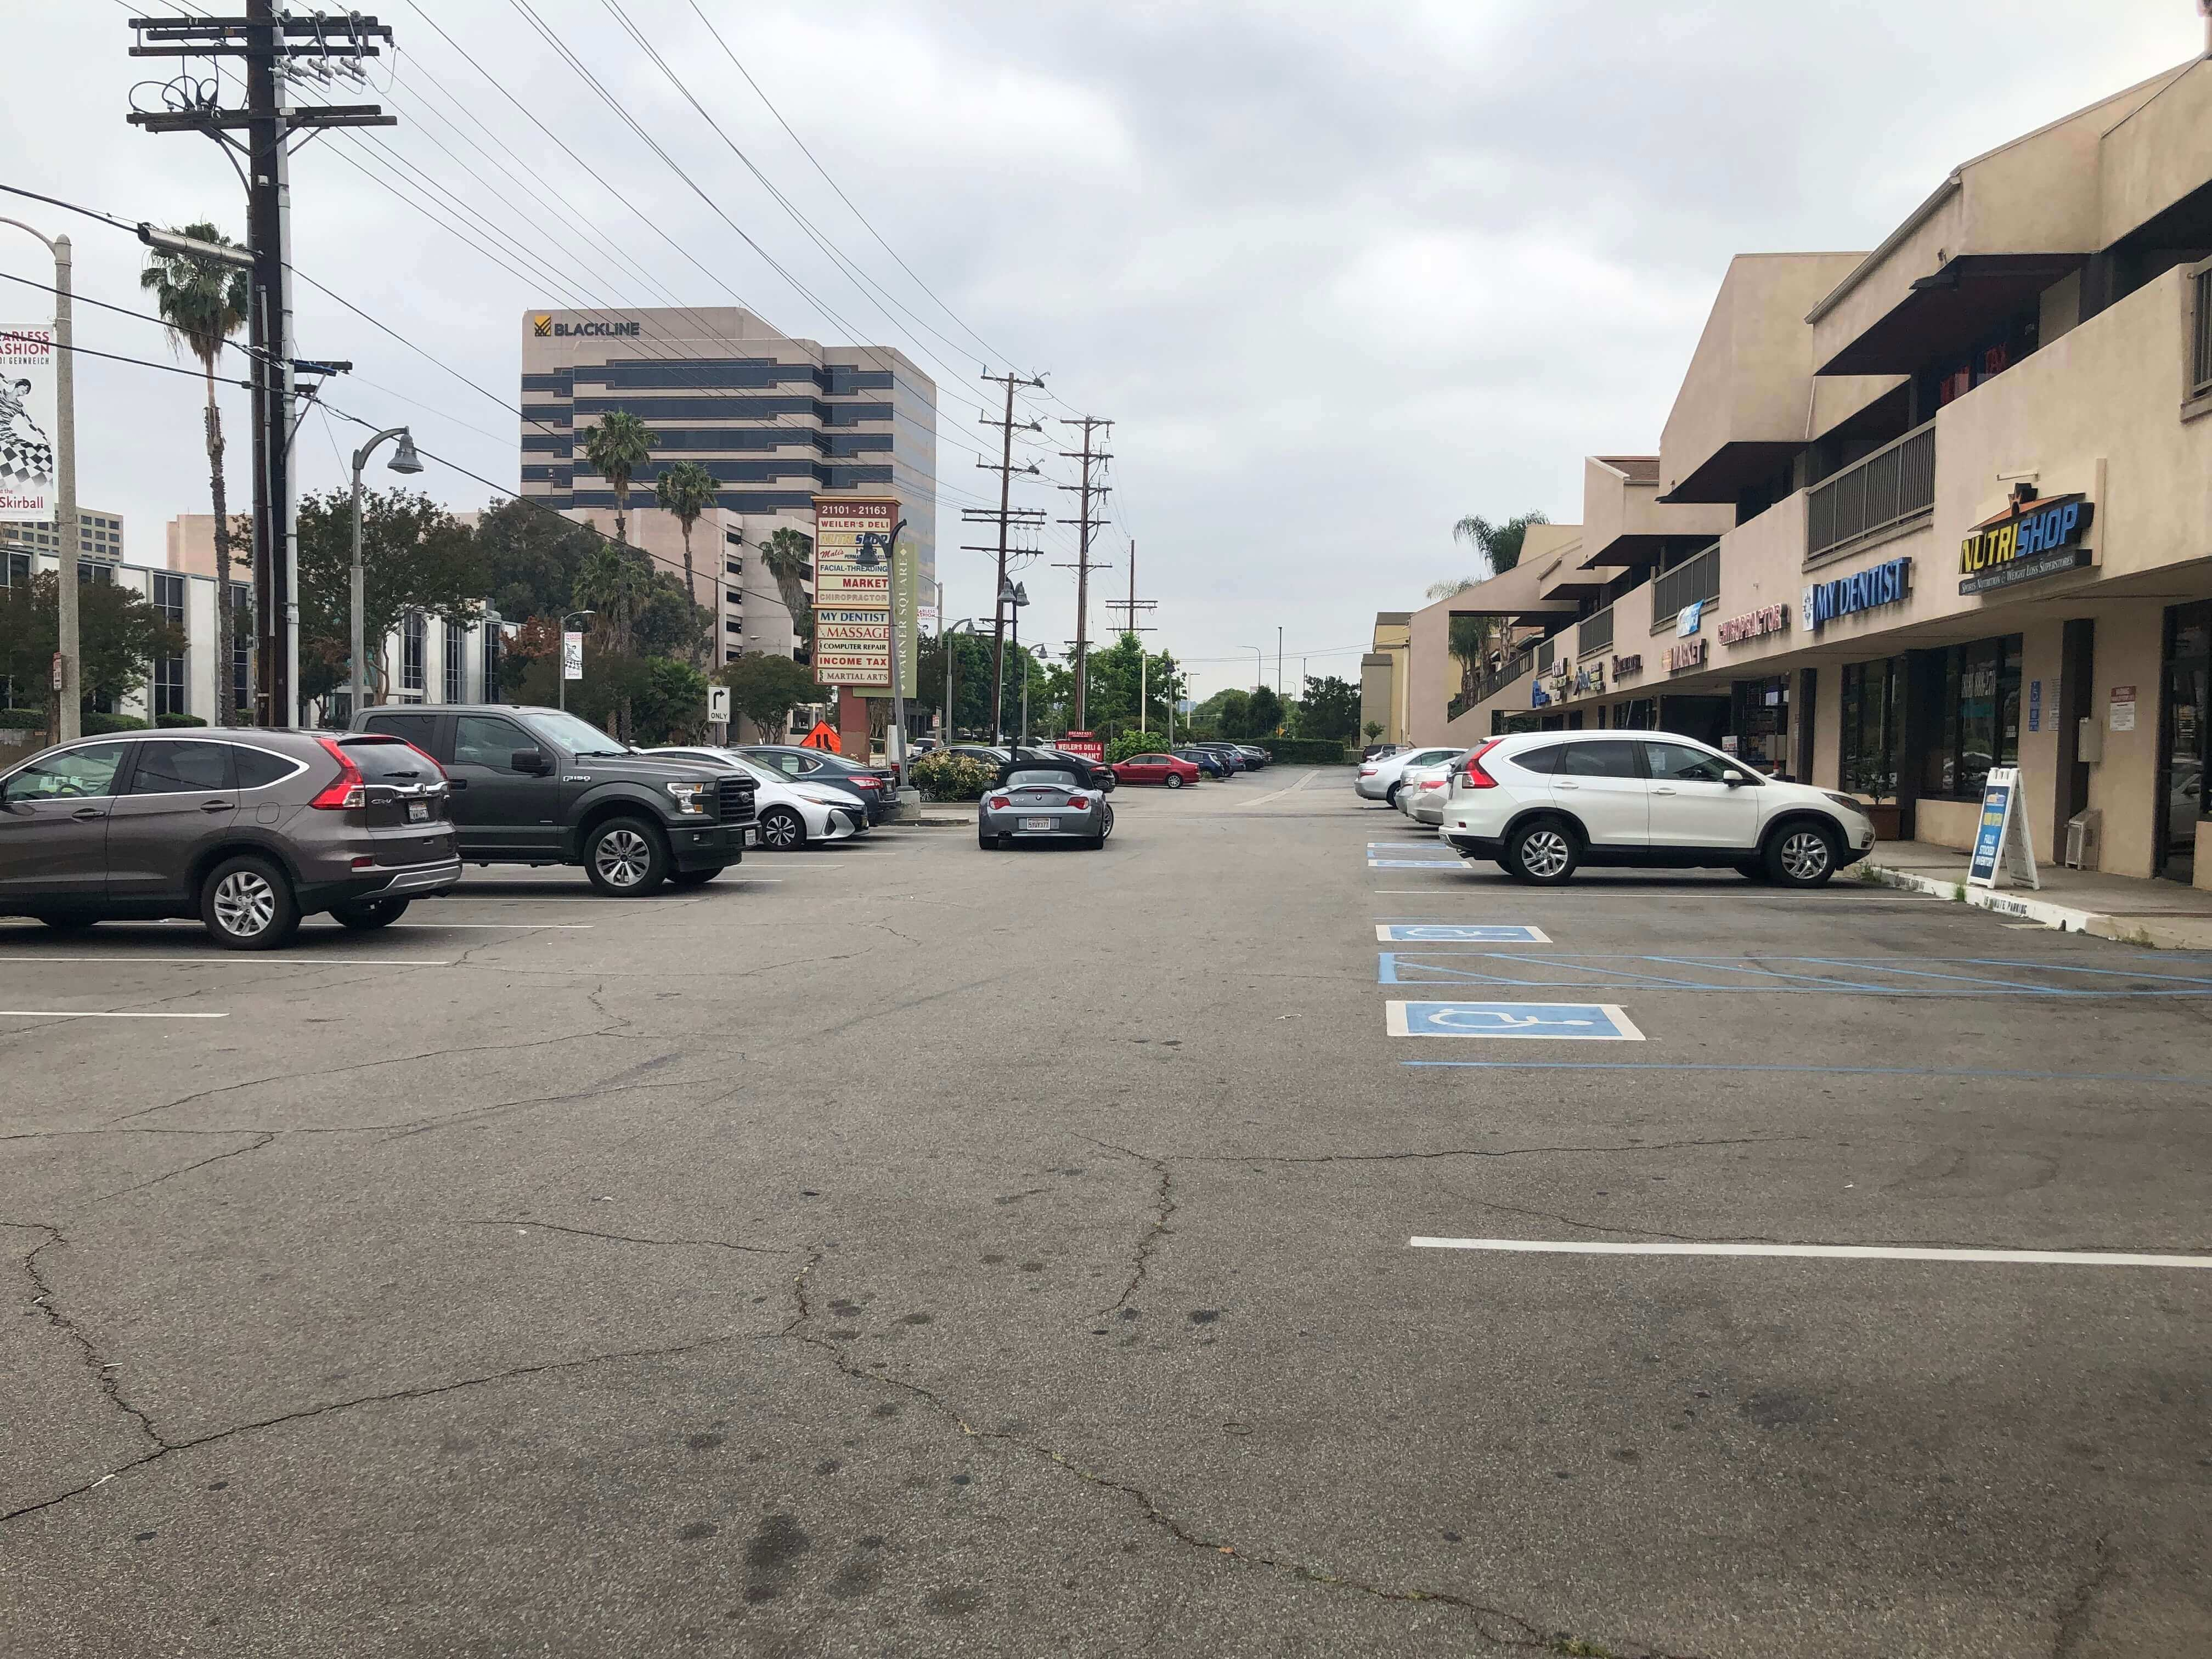 parking space filled with cars